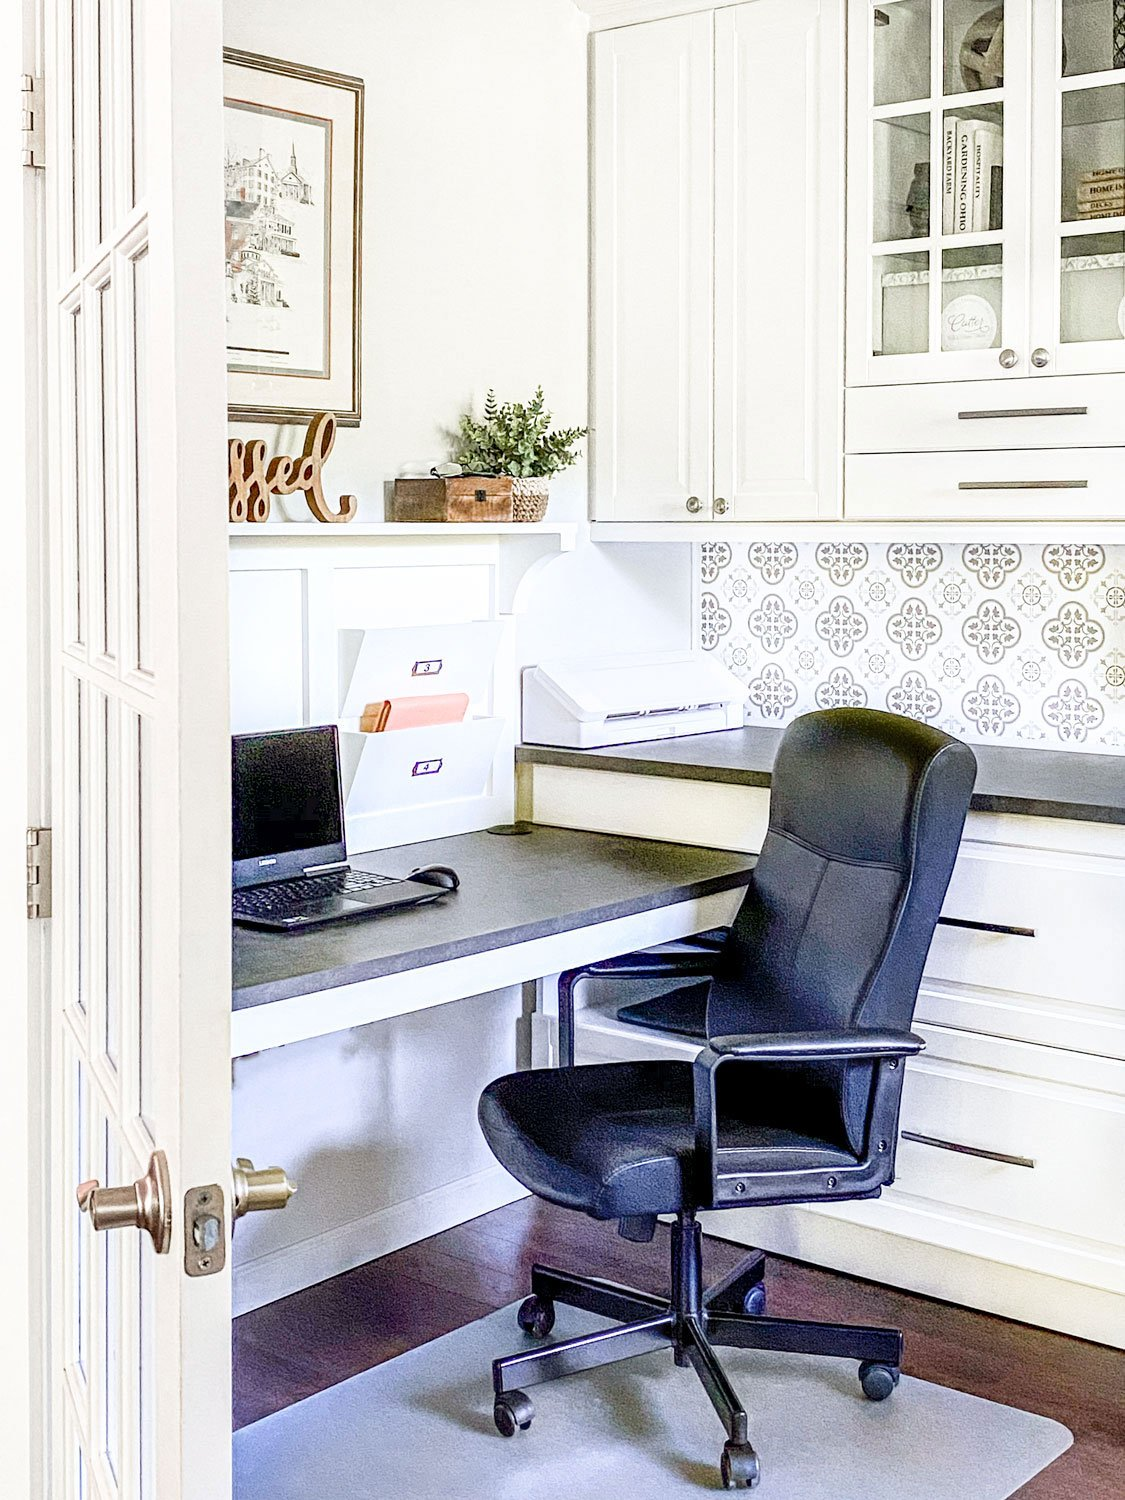 Built In Home Office Design Using Ikea Sektion Cabinets